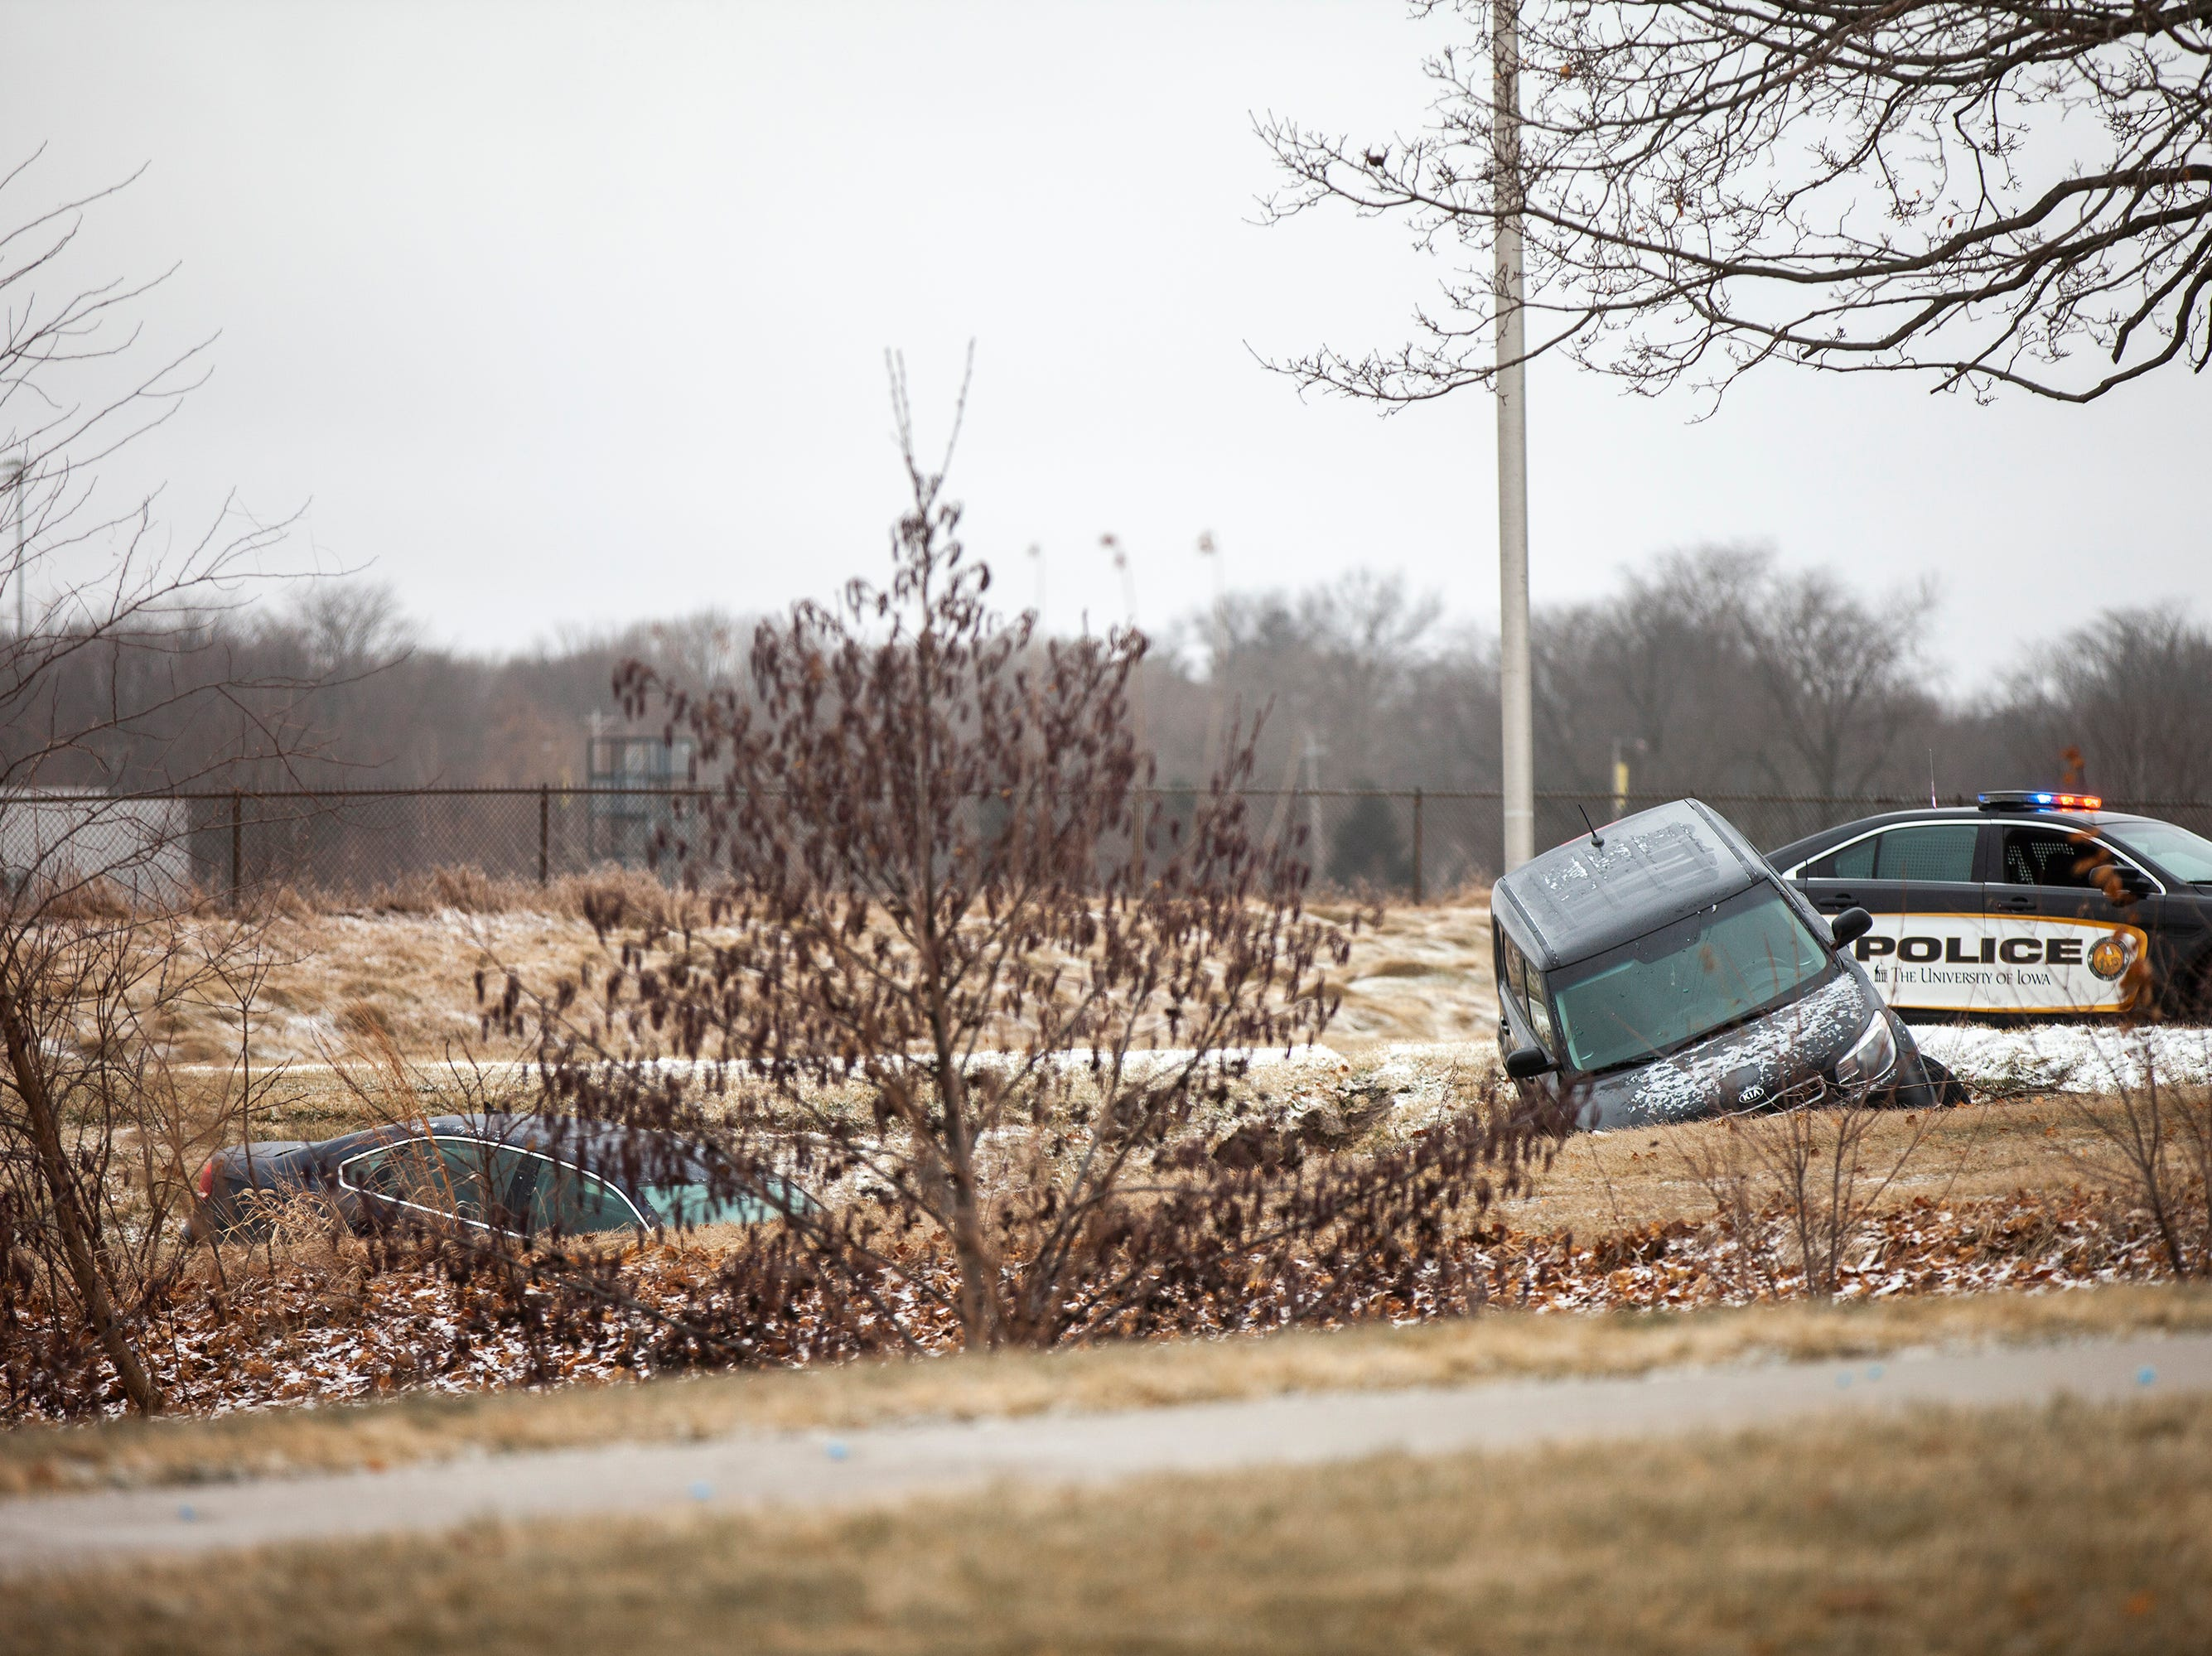 A University of Iowa police officer responds to an incident where two vehicles drove off the road due to icy conditions on Friday, Dec. 28, 2018, off of Mormon Trek Blvd near Hawkeye Court on the west side of Iowa City.